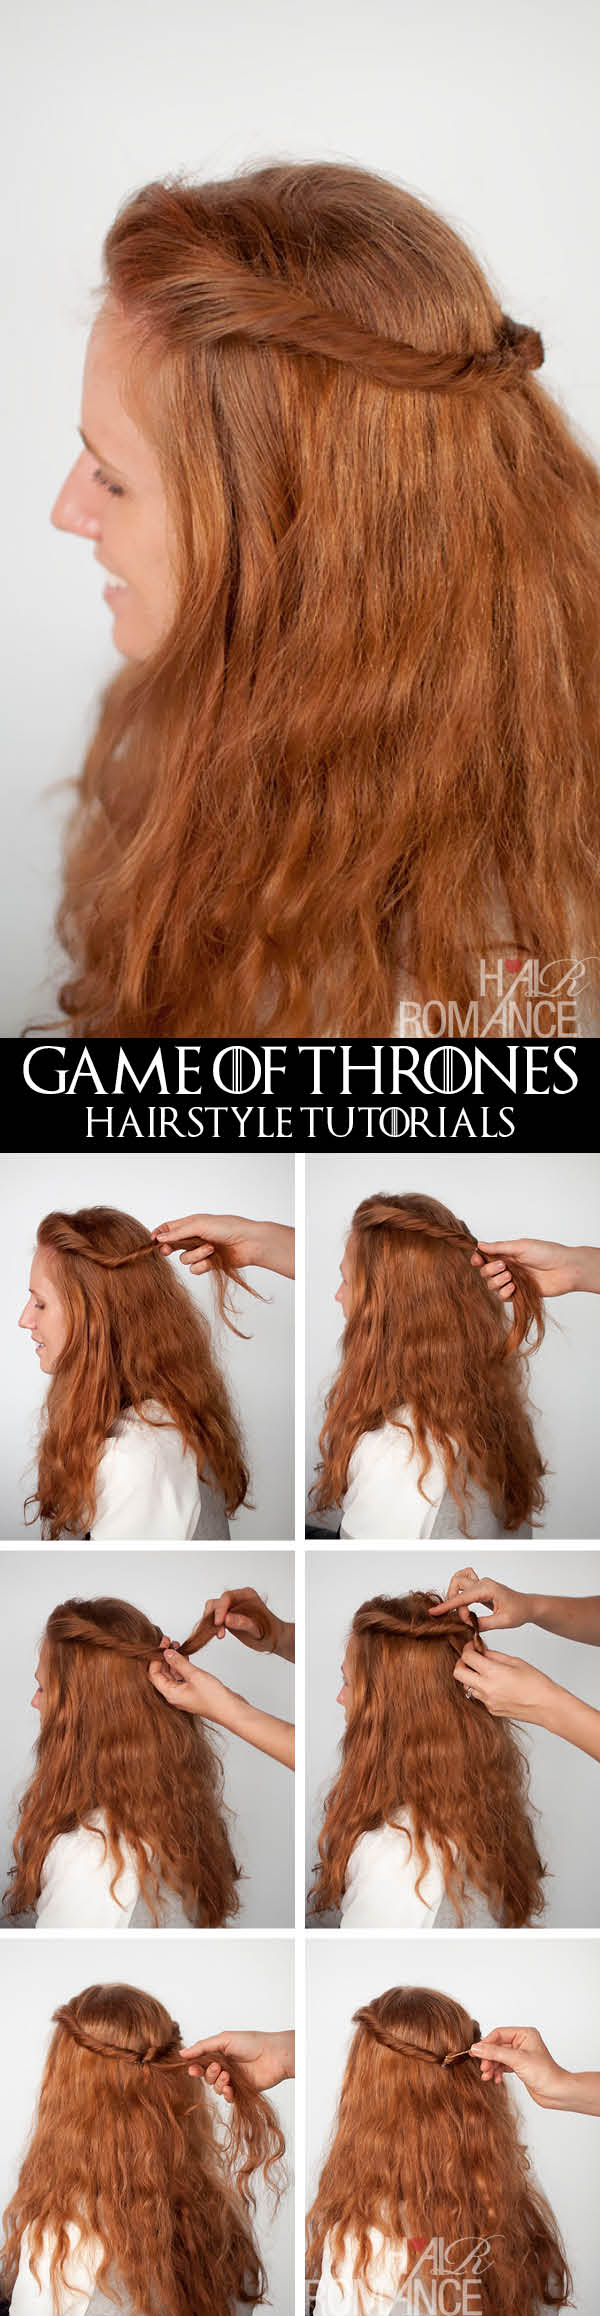 Hair Romance - Game of Thrones hairstyle tutorials - Margaery Tyrell twists